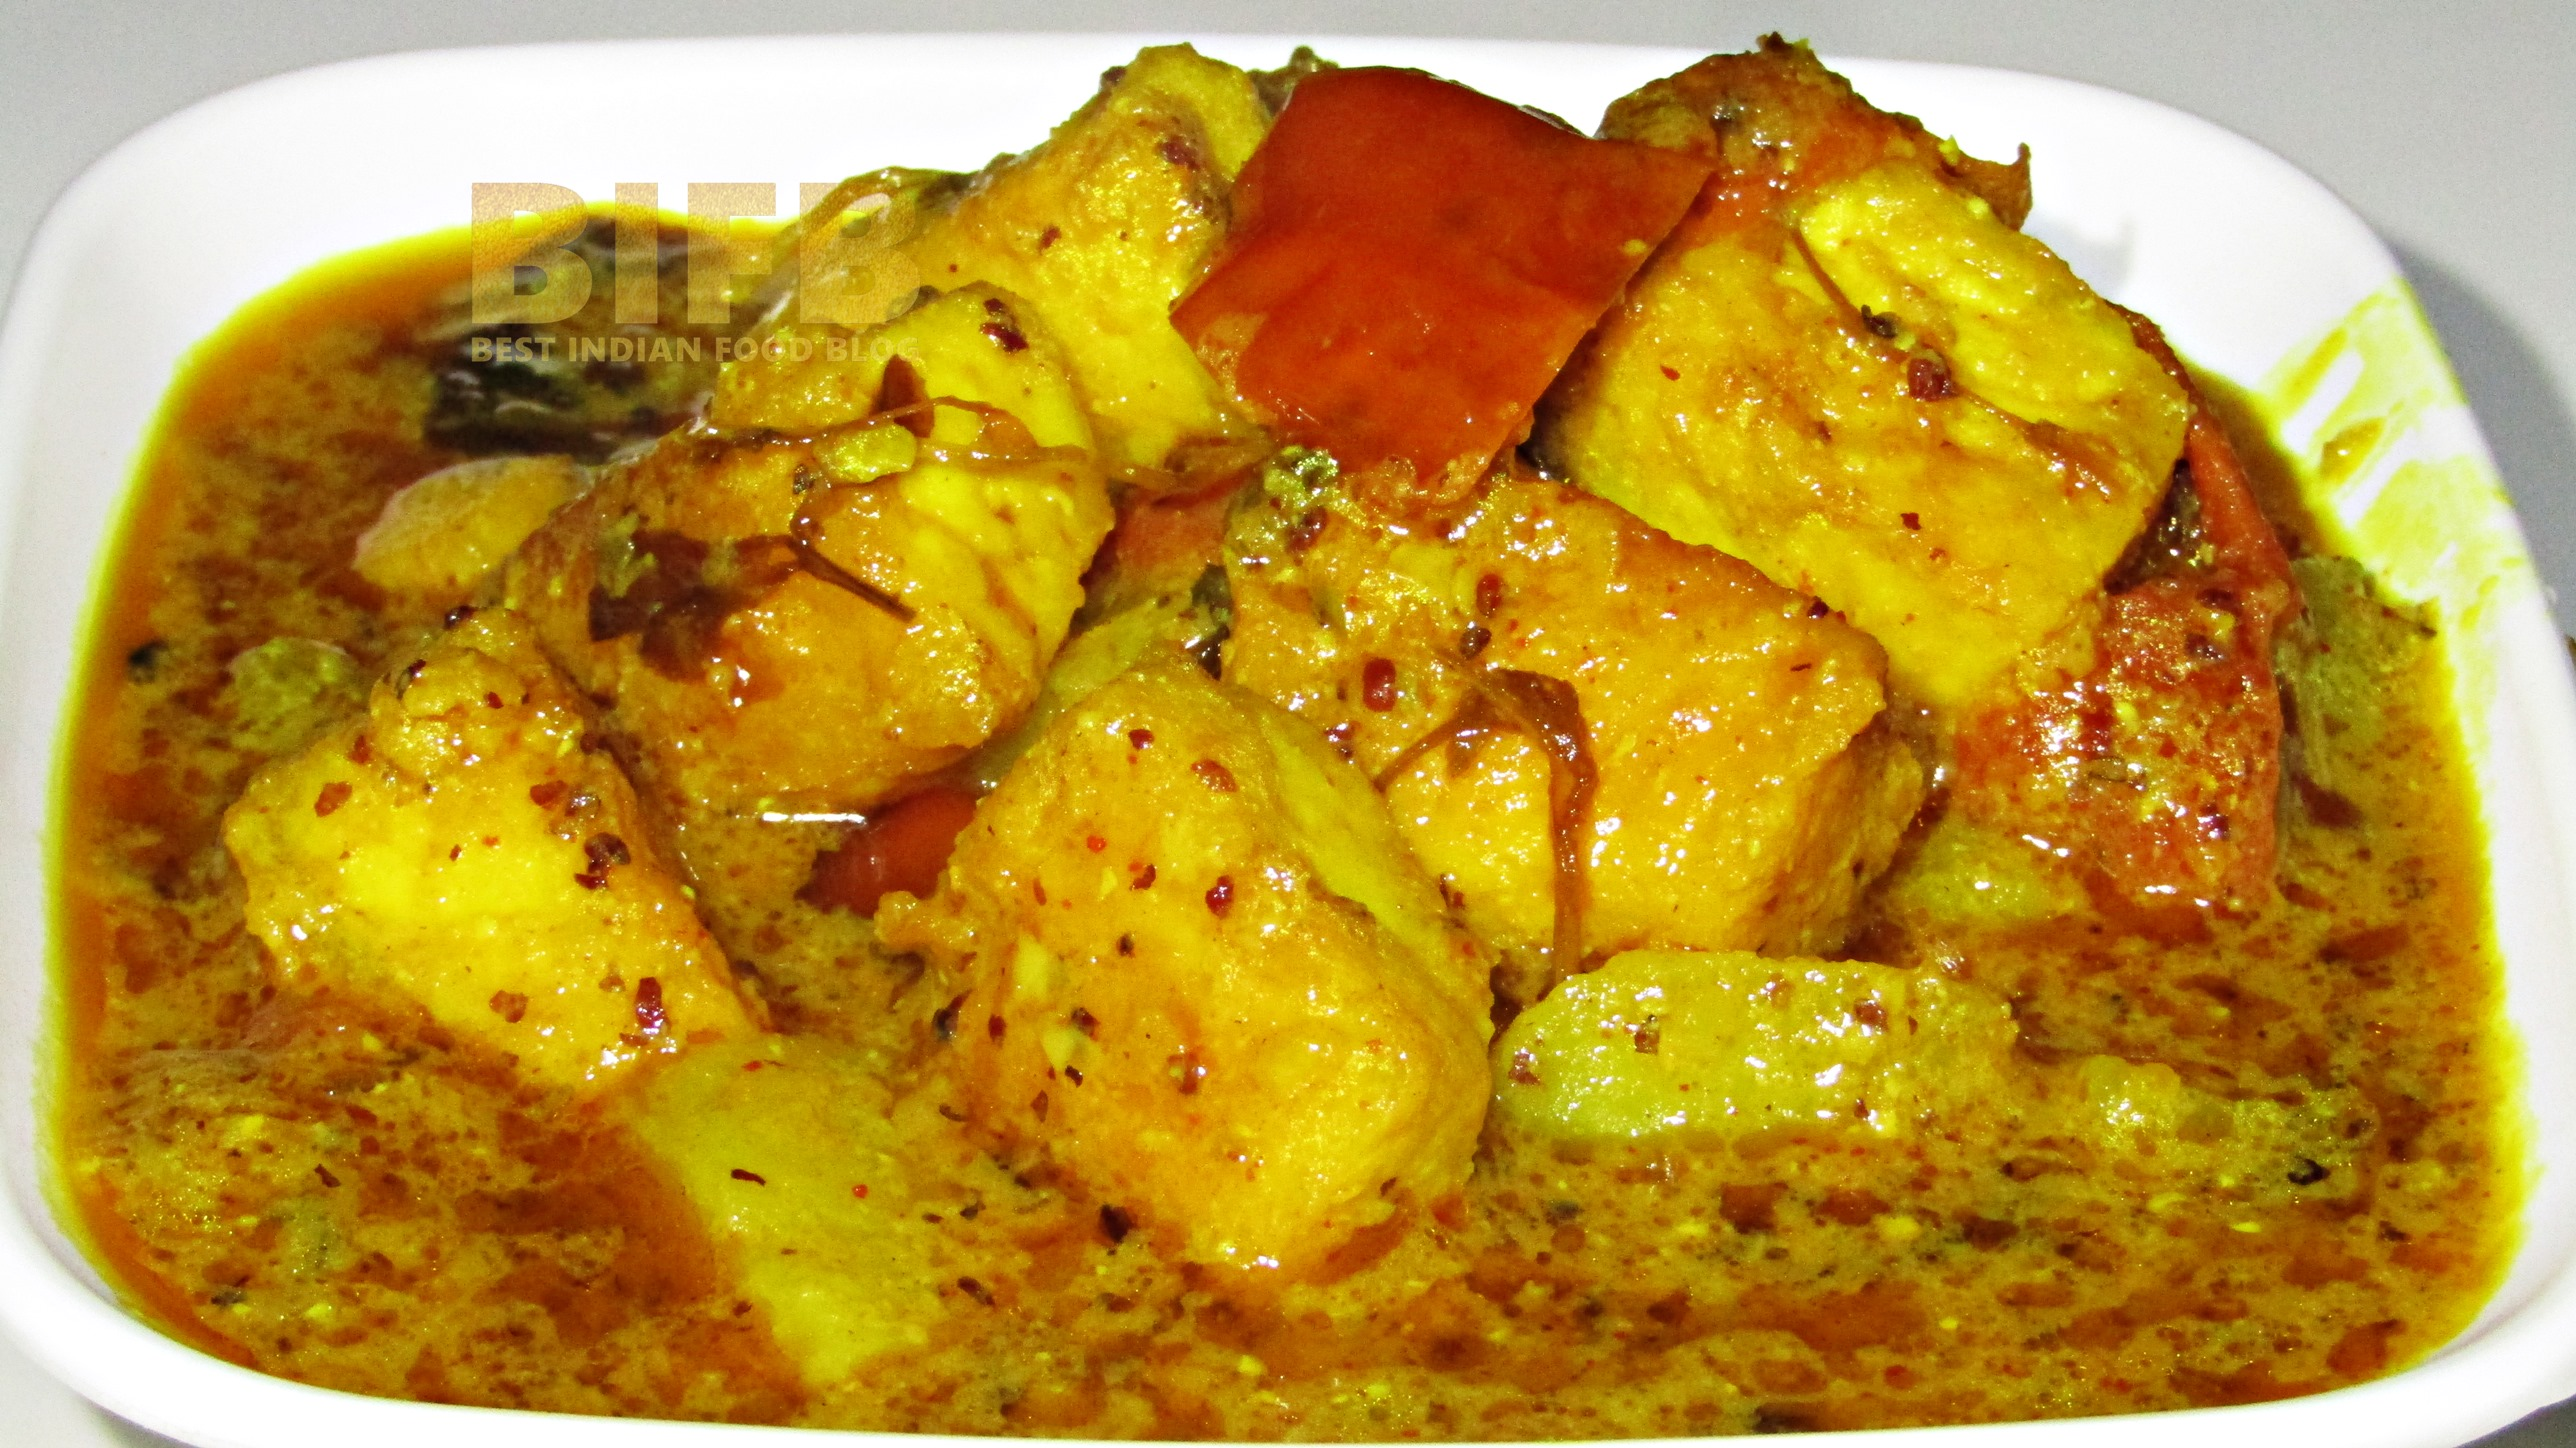 Aloo Paneer From Bihar India Best Indian Food Blog Cottage Cheese Recipe Best Indian Food Blog